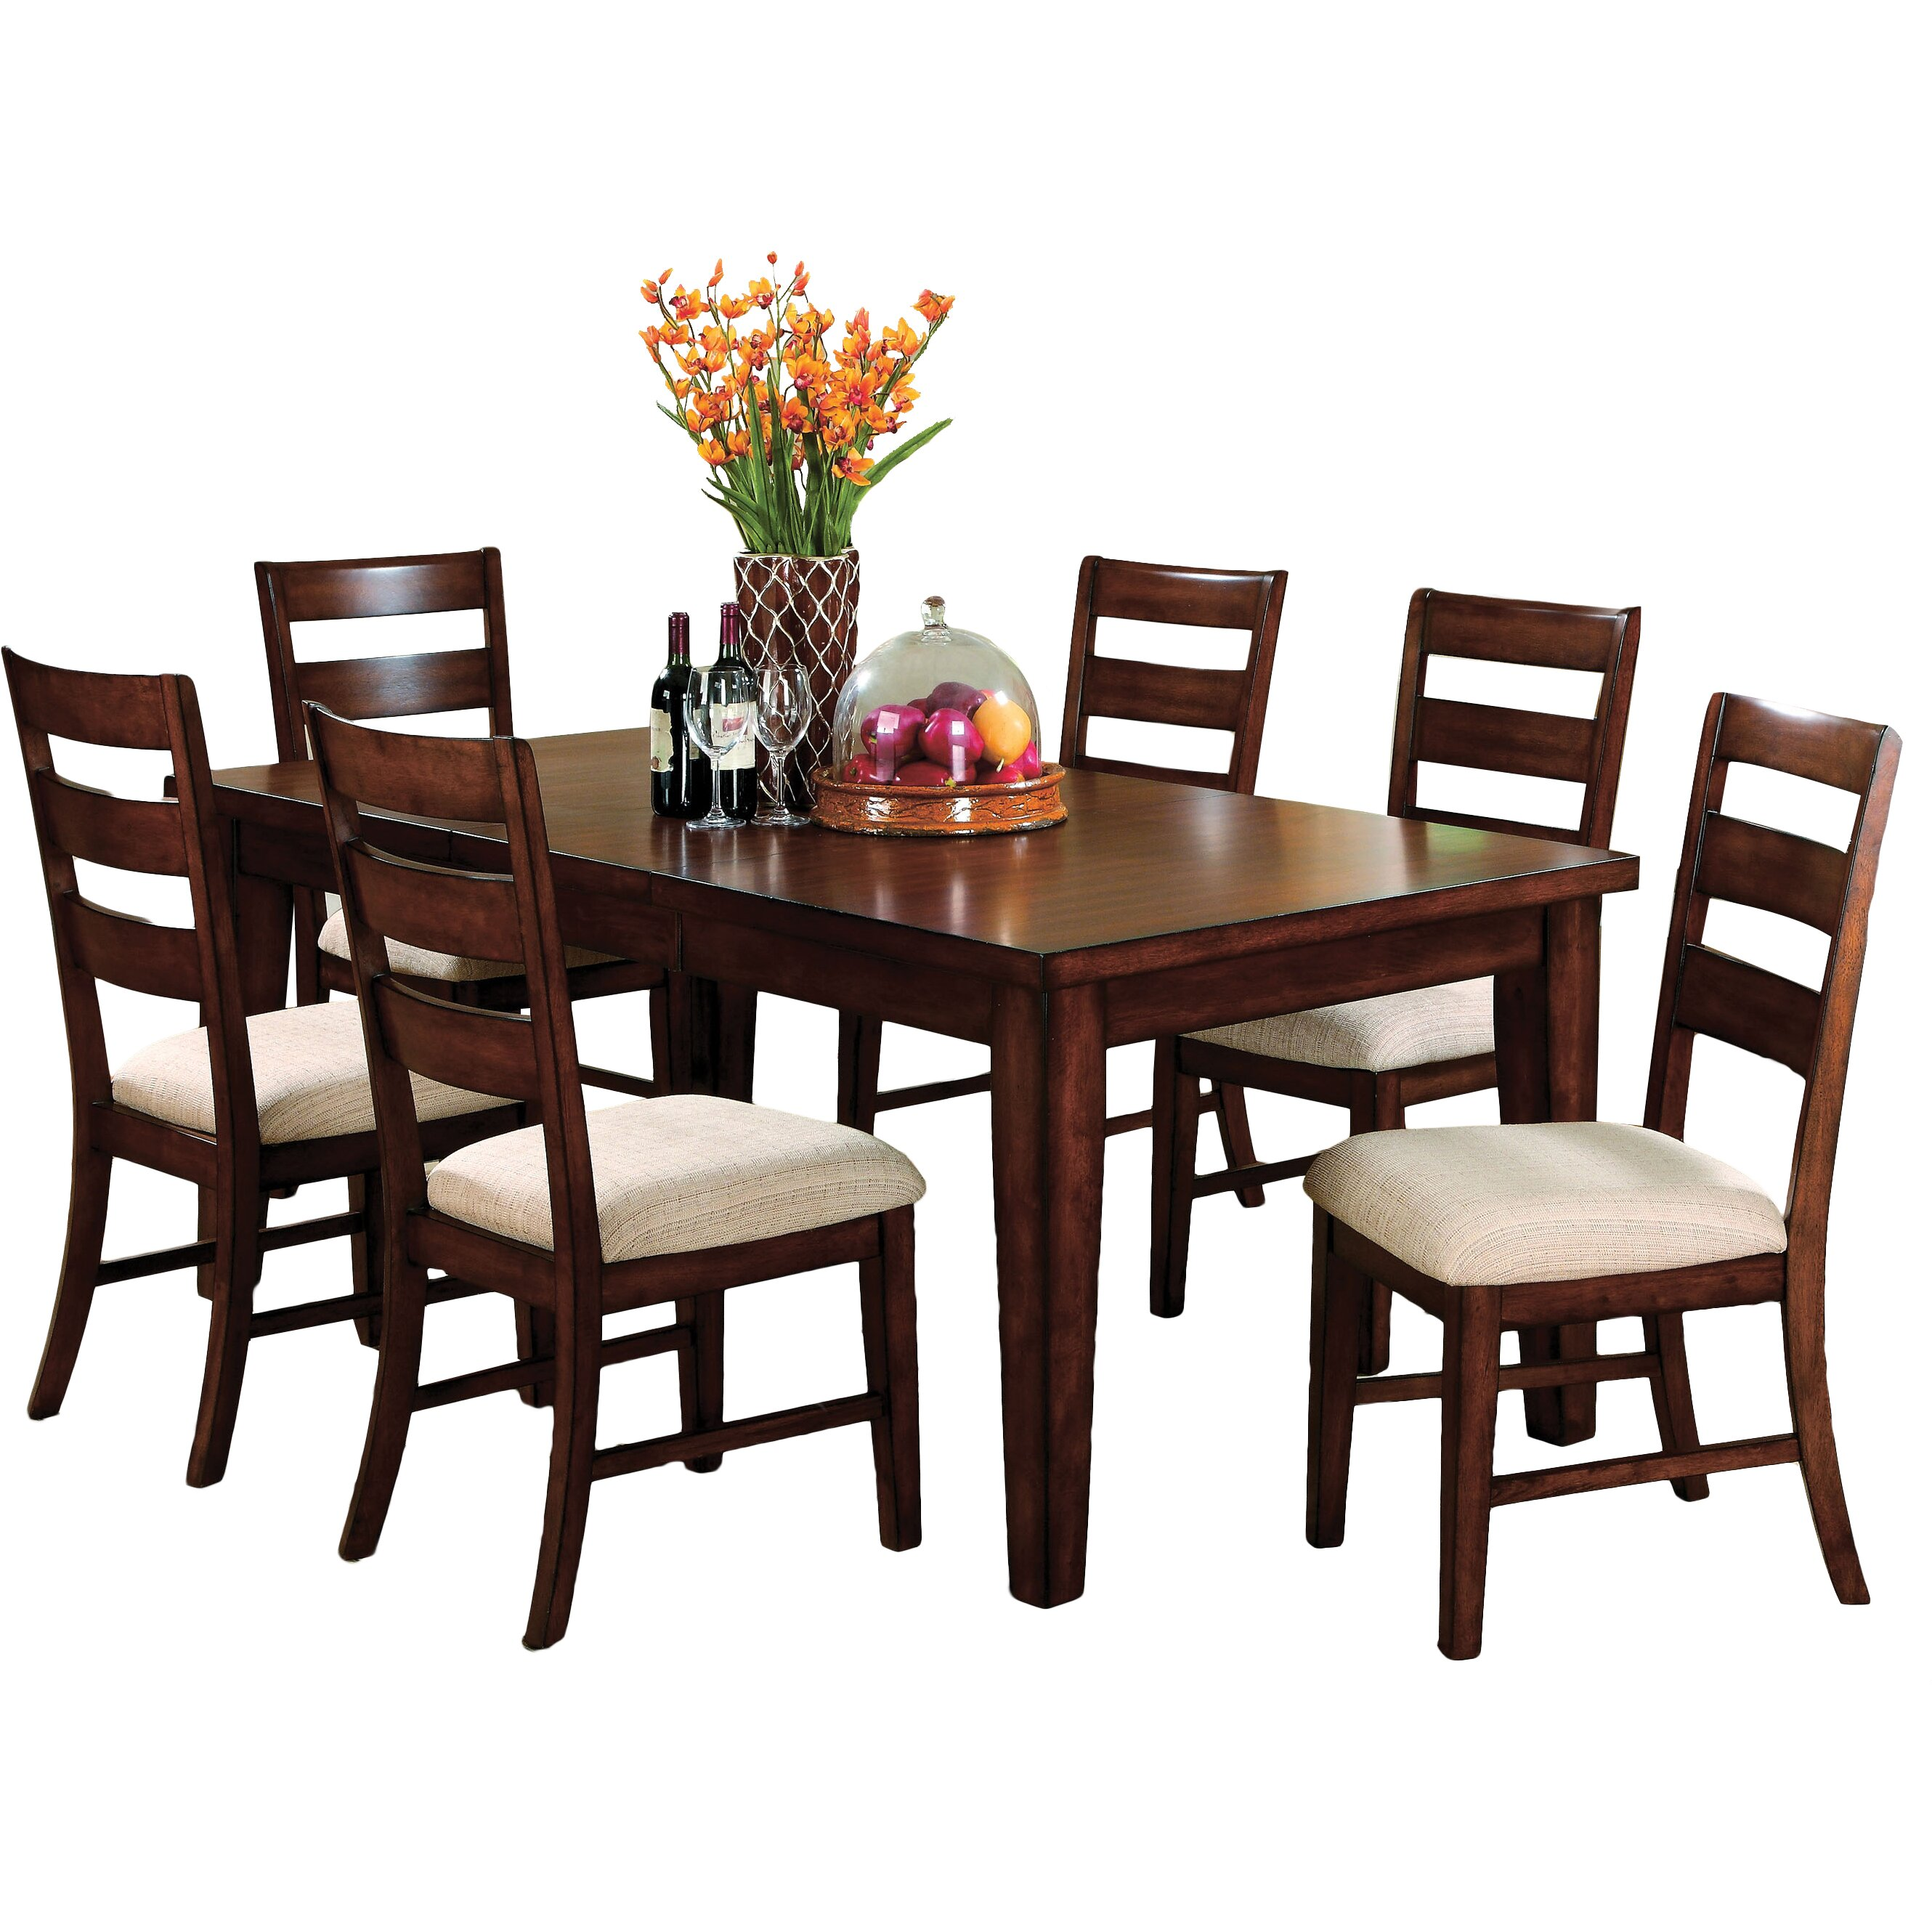 Hokku designs pristine 7 piece dining set reviews wayfair for 7 piece dining set